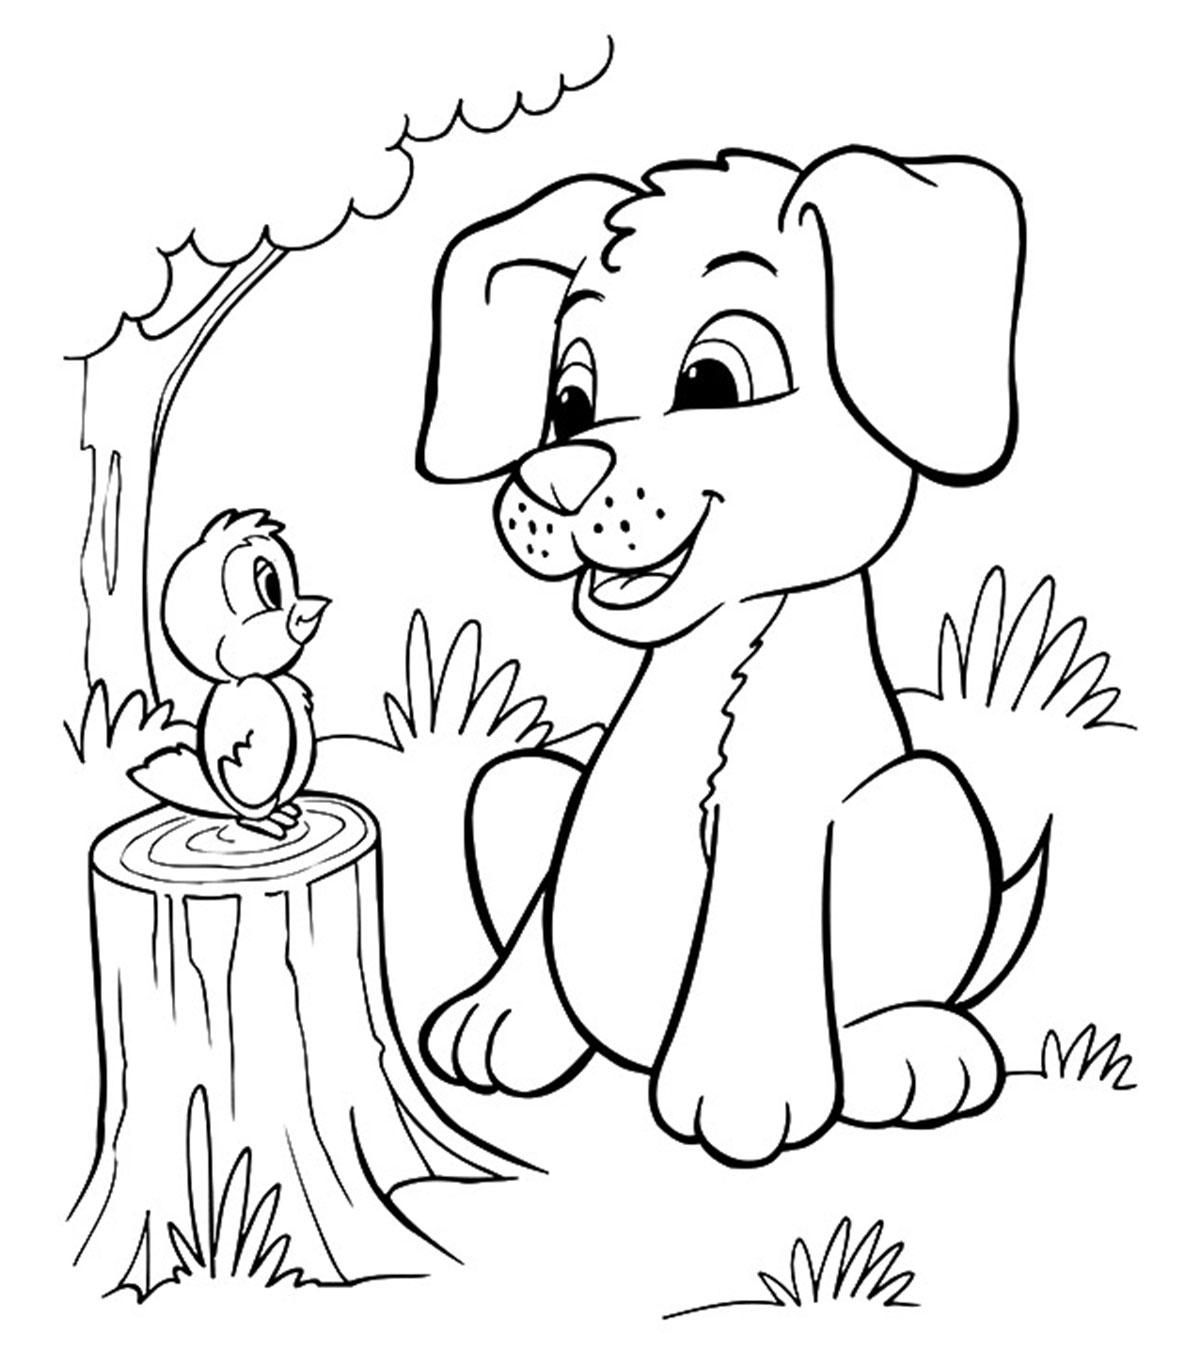 51 Coloring Page Puppy Puppy Coloring Pages Dog Coloring Page Animal Coloring Pages [ 1350 x 1200 Pixel ]